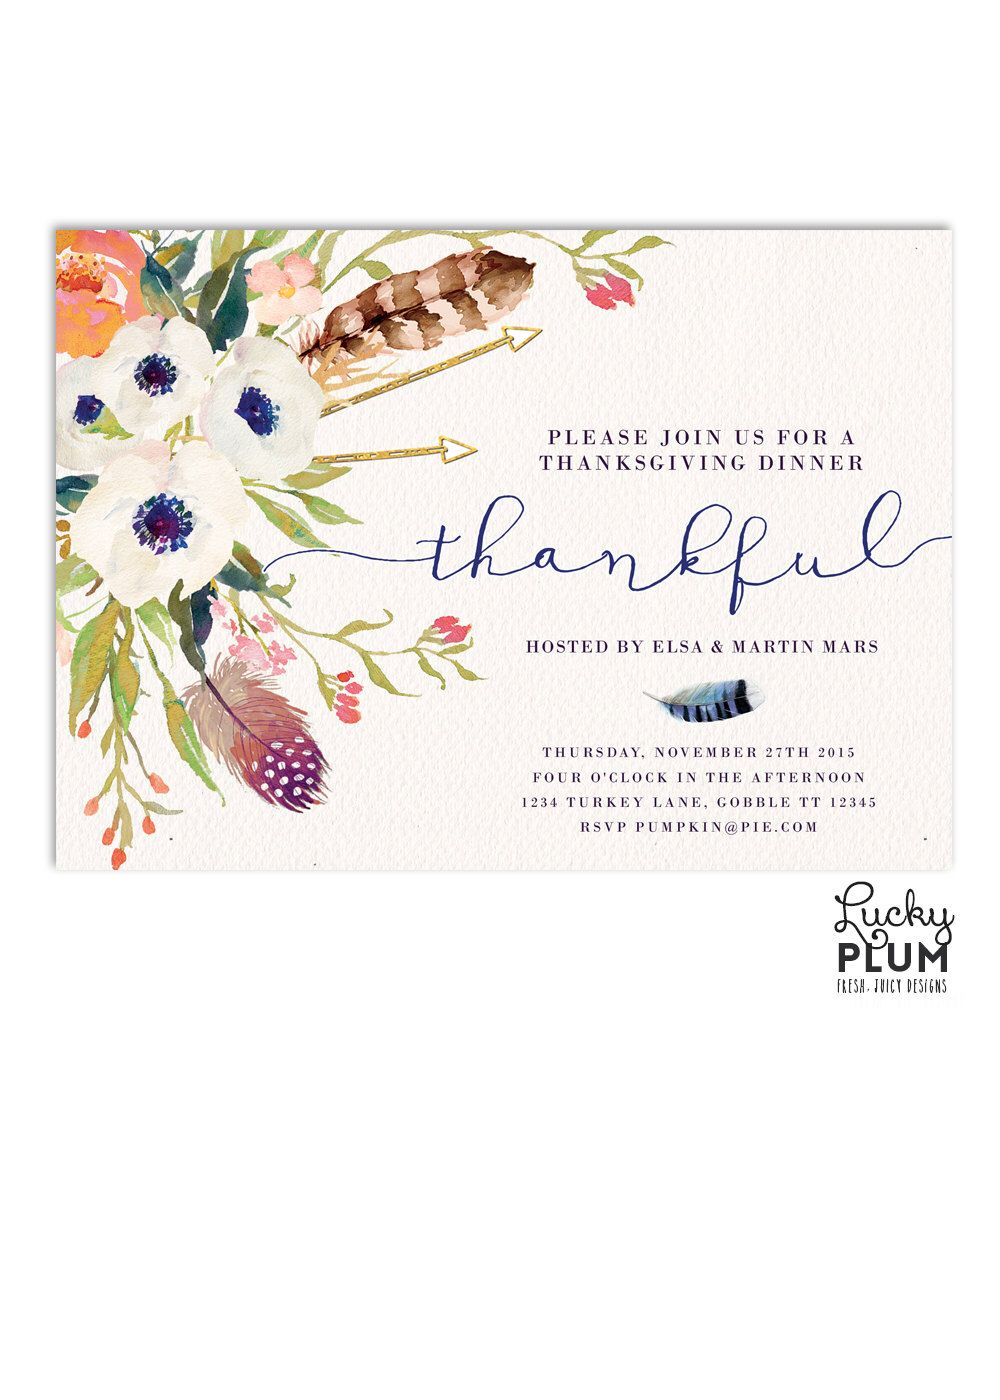 bridal shower invitations with recipe card attached%0A Thanksgiving Invitation   Autumn Harvest Invite   Potluck Invite   Fall Bridal  Shower Invitation   Fall